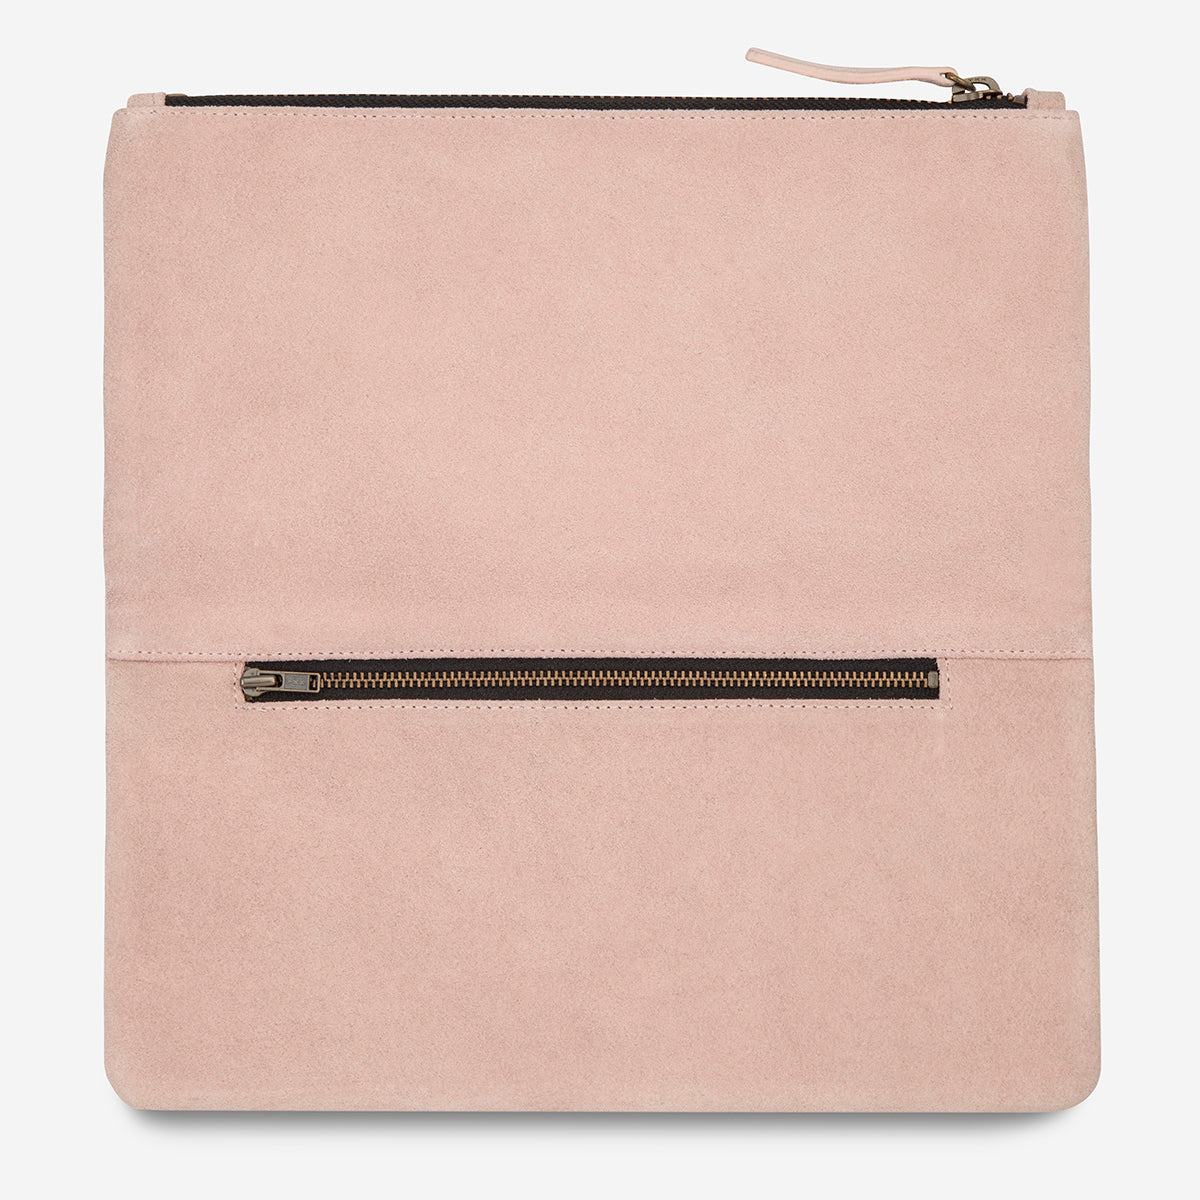 Status Anxiety Feel The Night Clutch - Dusty Pink